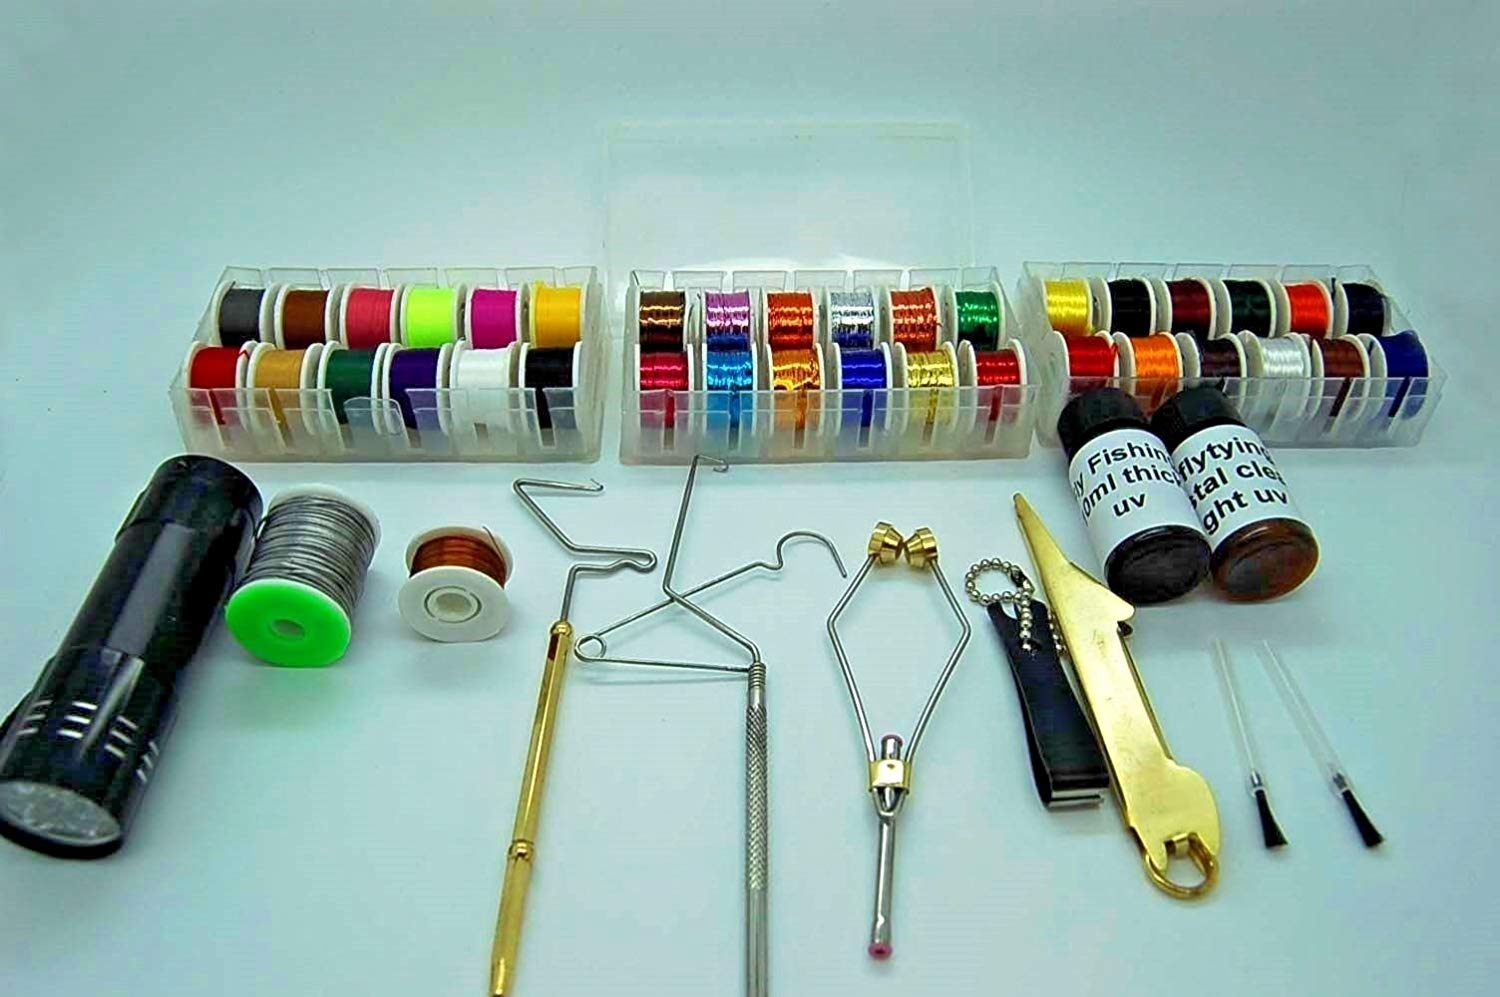 Fly Tying Tool and Material Kit, Floss, Tinsel, Thread, Glue, Whip Finisher, Wire, UV Torch